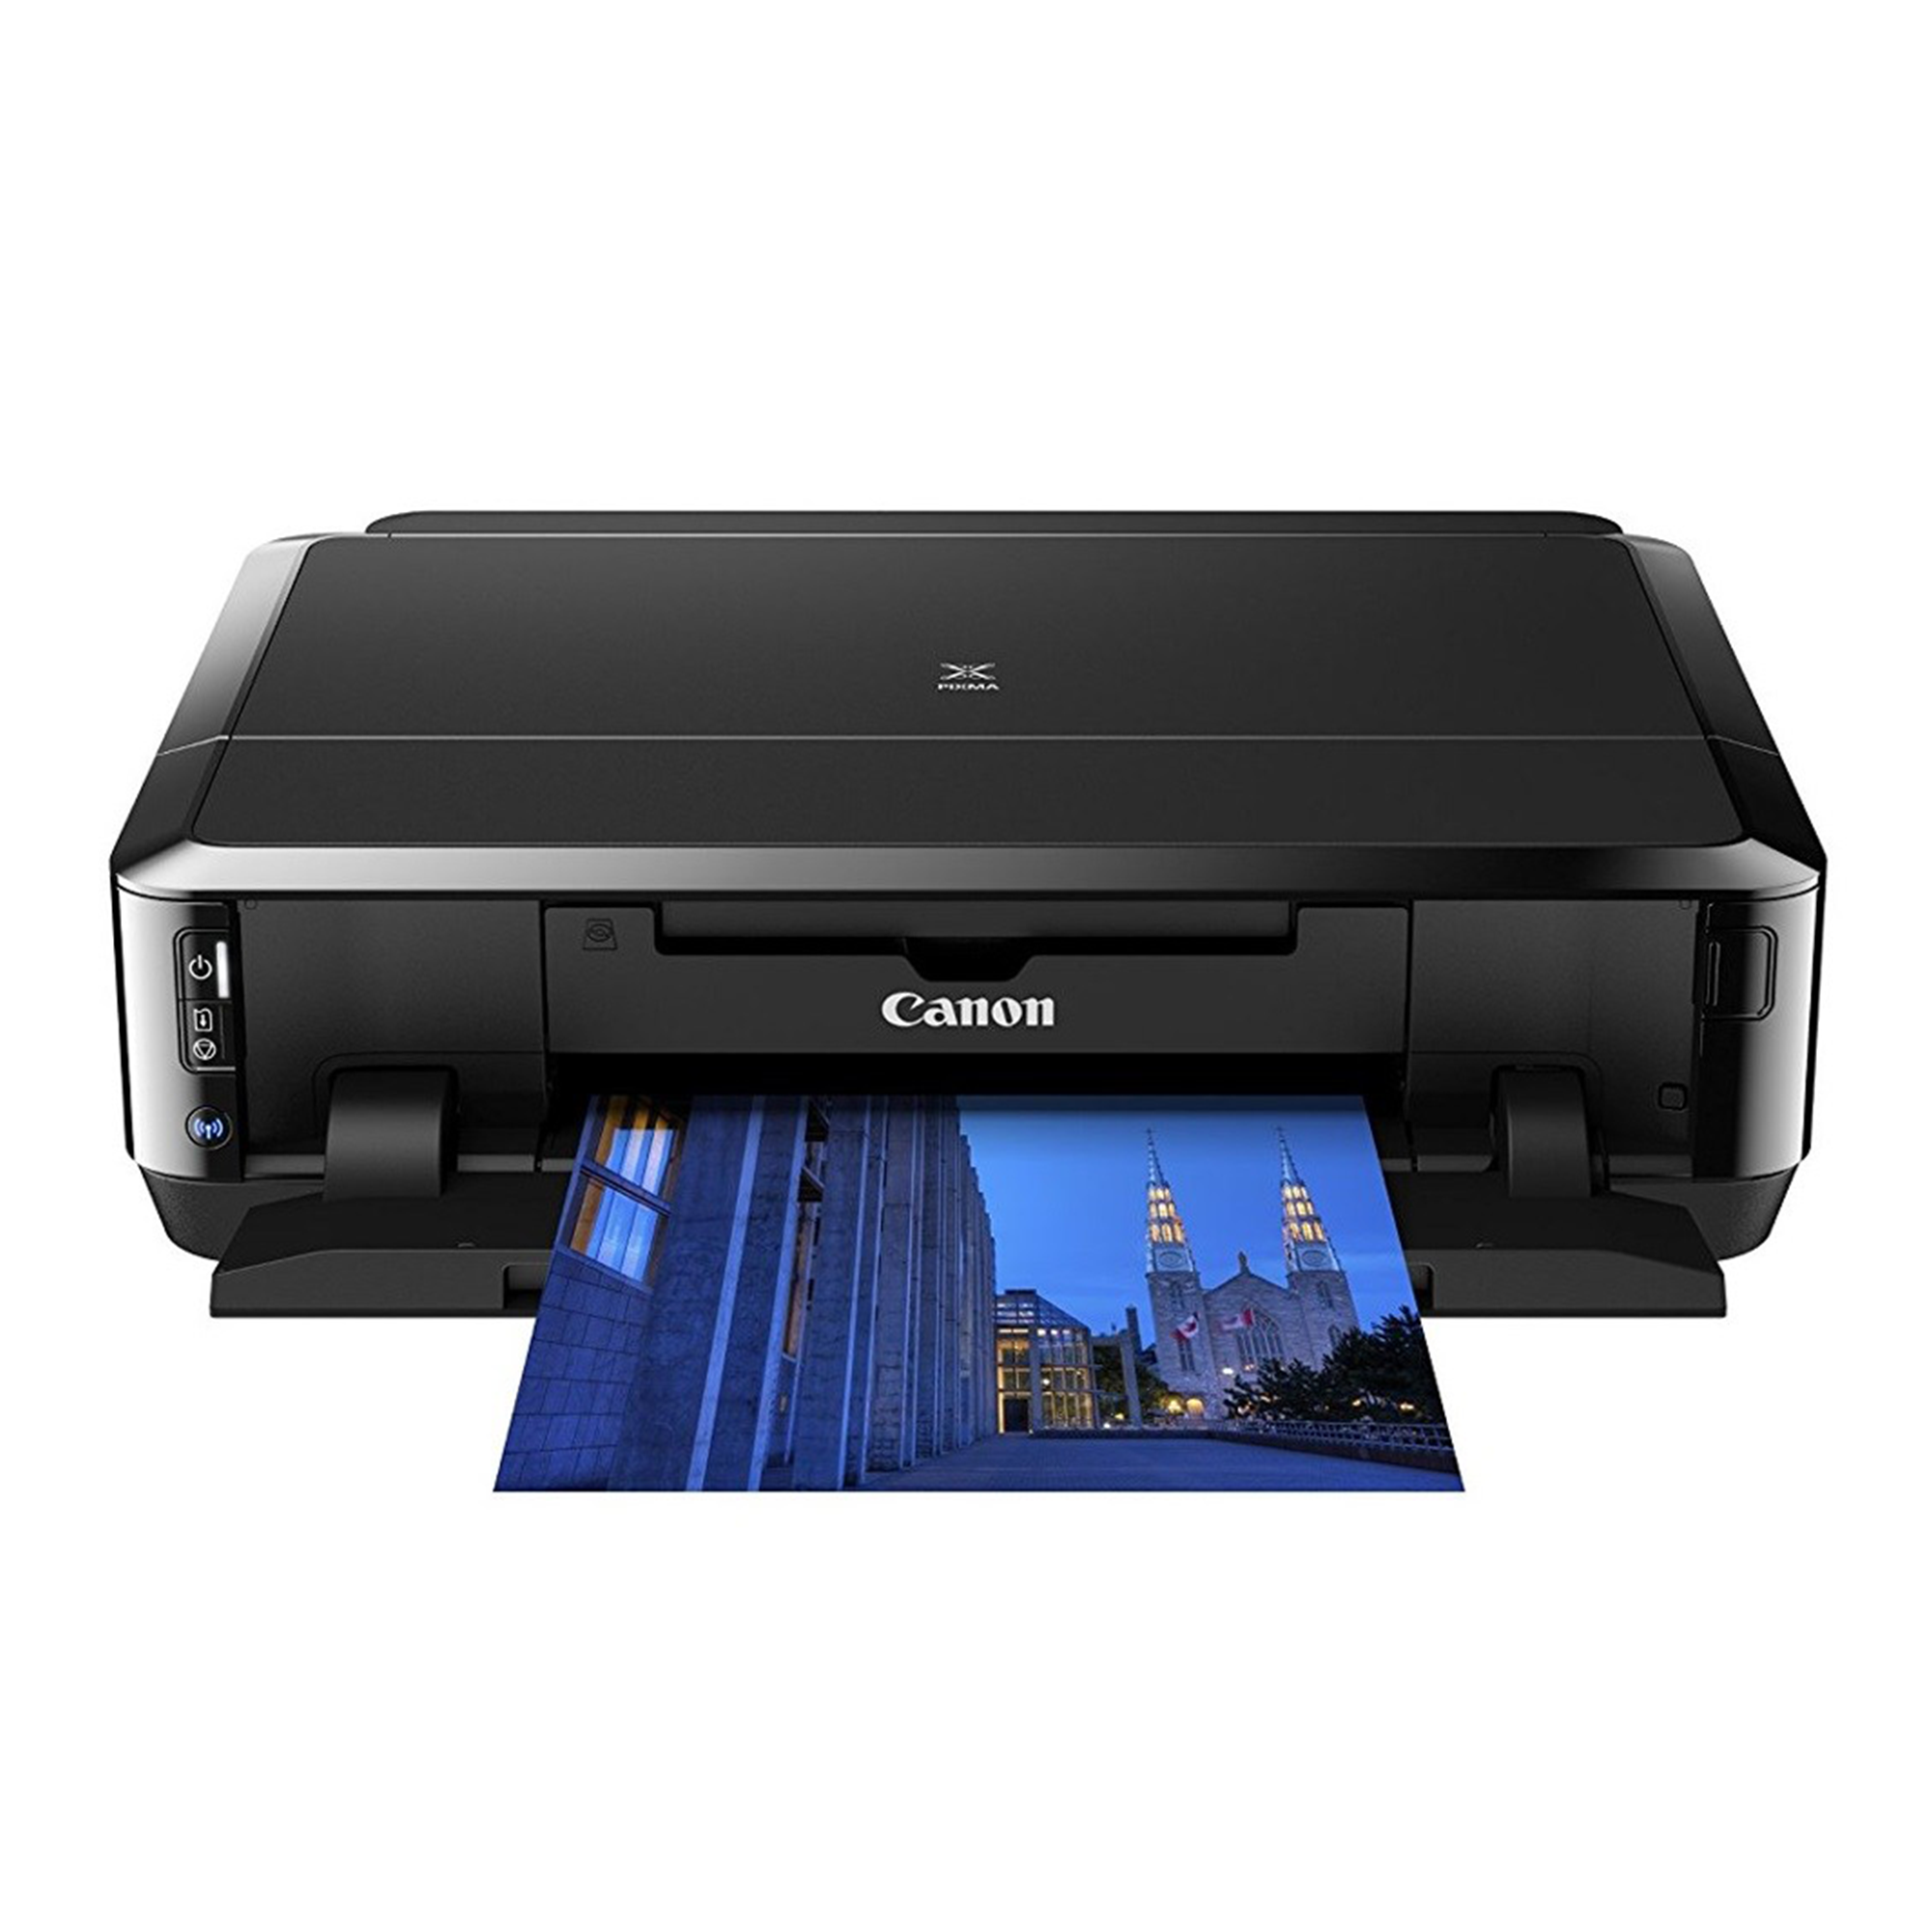 CANON PIXMA  IP7240 Printer + A4 Copy Paper Free Gift